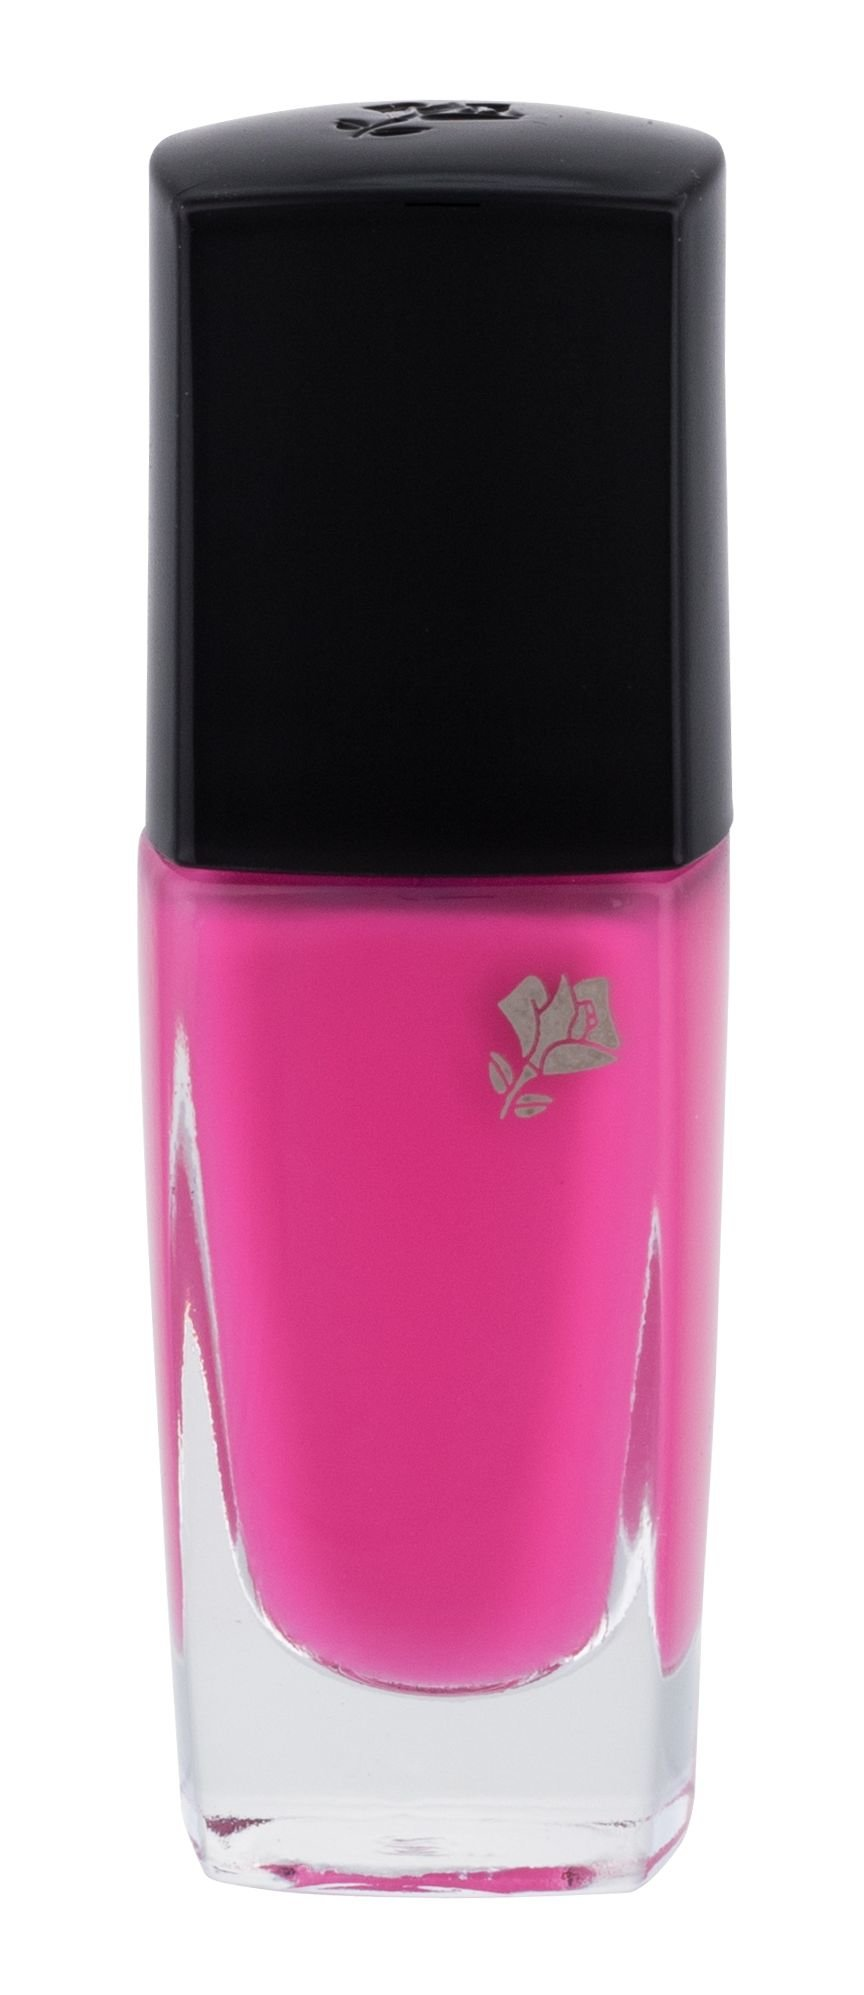 Lancôme Vernis In Love Cosmetic 6ml 366 Rose Satin